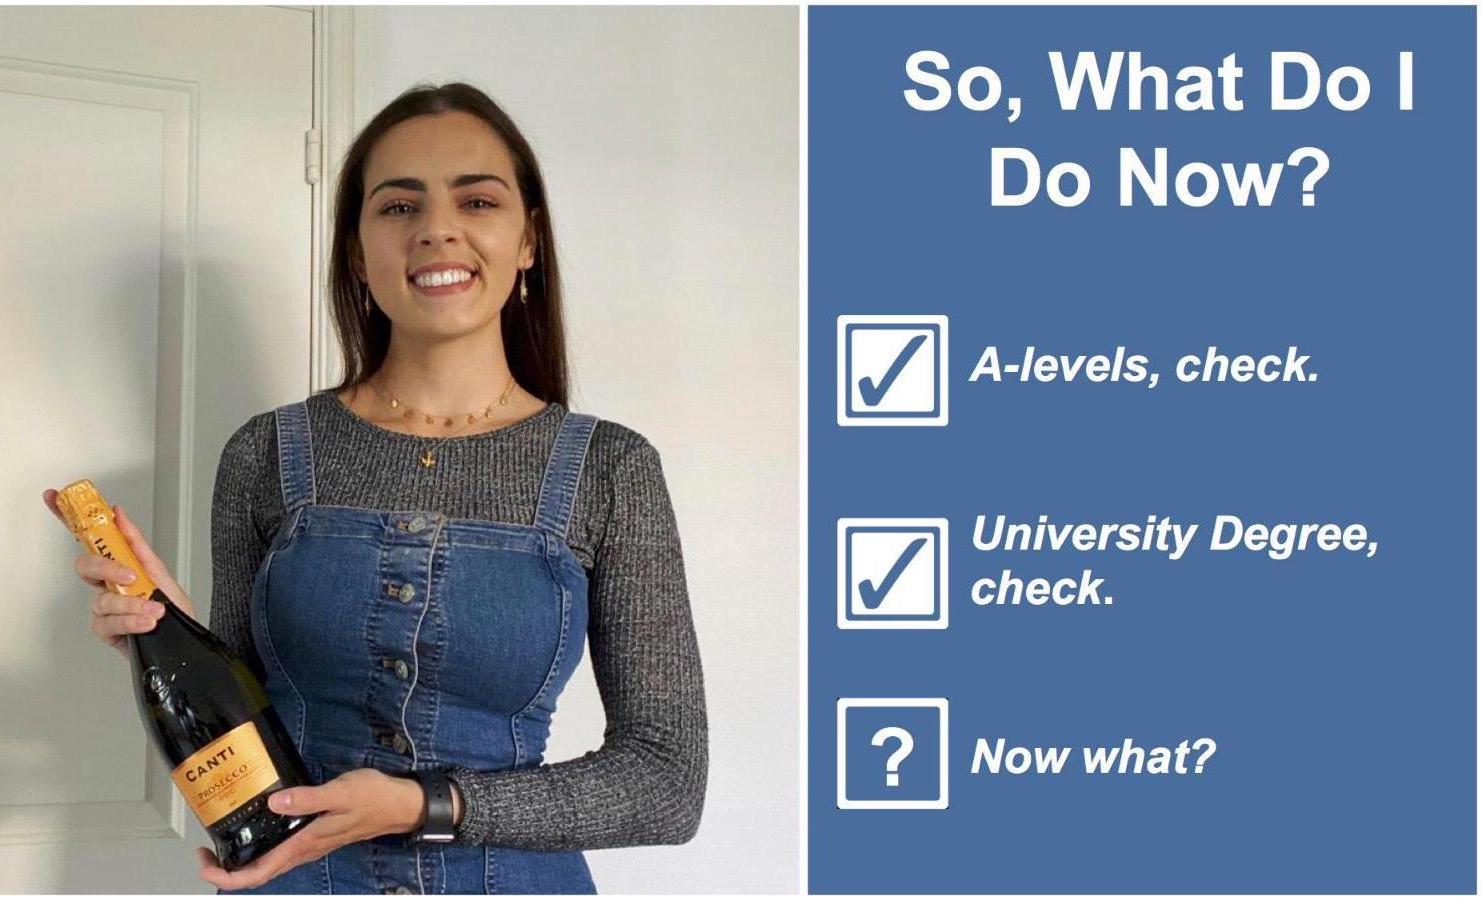 On the left is an image of Phoebe Blair smiling and holding a bottle of Prosecco, she wears a denim pinafore with a grey long sleeved top. On the right side is a blue background with the title 'So, What do I do Now?' in bold white text. Below is a white bock with a blue tick next to Alevels, check. Then a mother white box with a blue tick next to University Degree, check. Under neath is a white box with a white question mark in the centre, followed by 'Now what?'